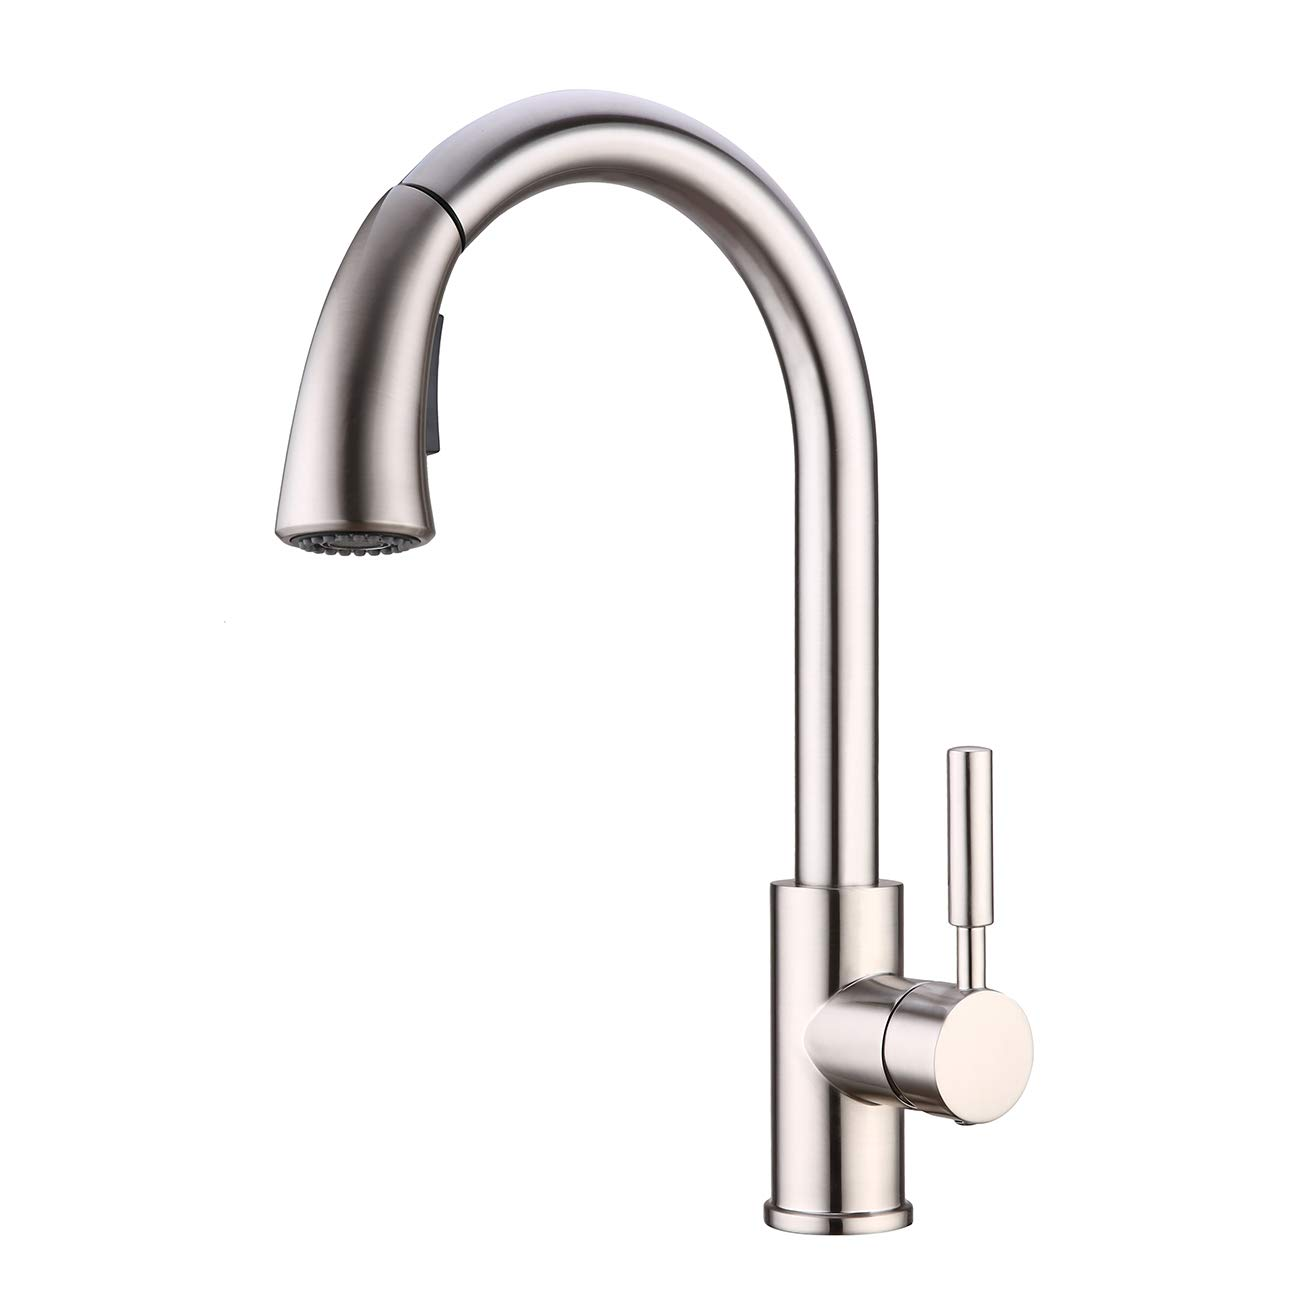 Kitchen Faucet with Pull Out Sprayer WENKEN Lead Free 360 Swivel High Arc Pull Down Pre-rinse Kitchen Sink Faucets Brushed Nickel